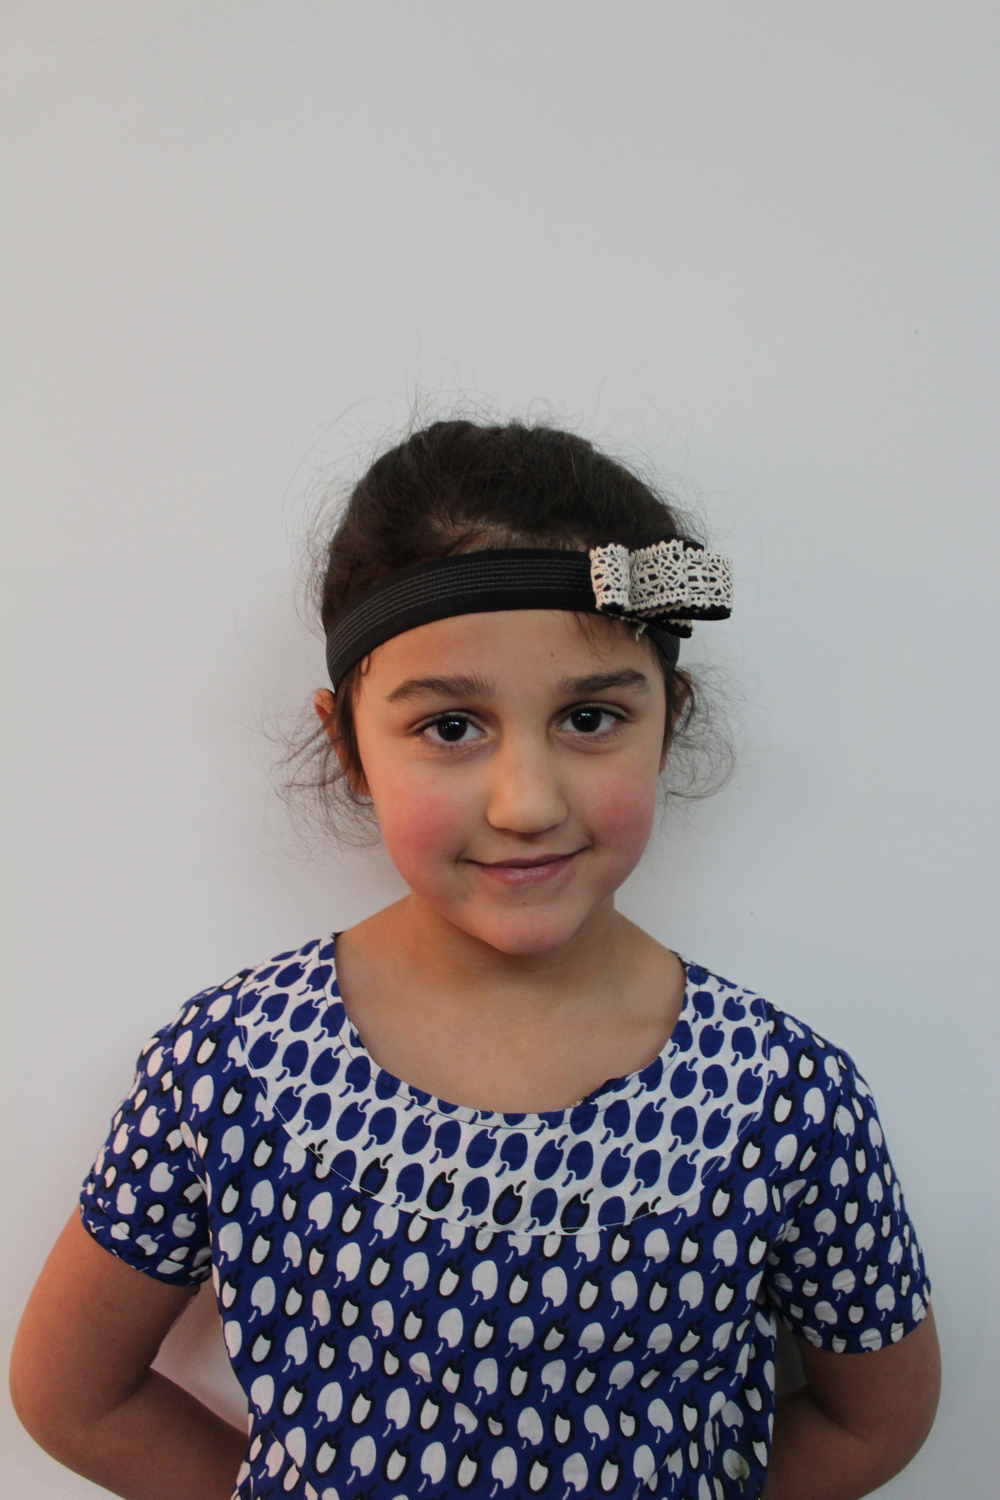 This artist designed and made, with her mom, an awesome headband - lace and elastic!